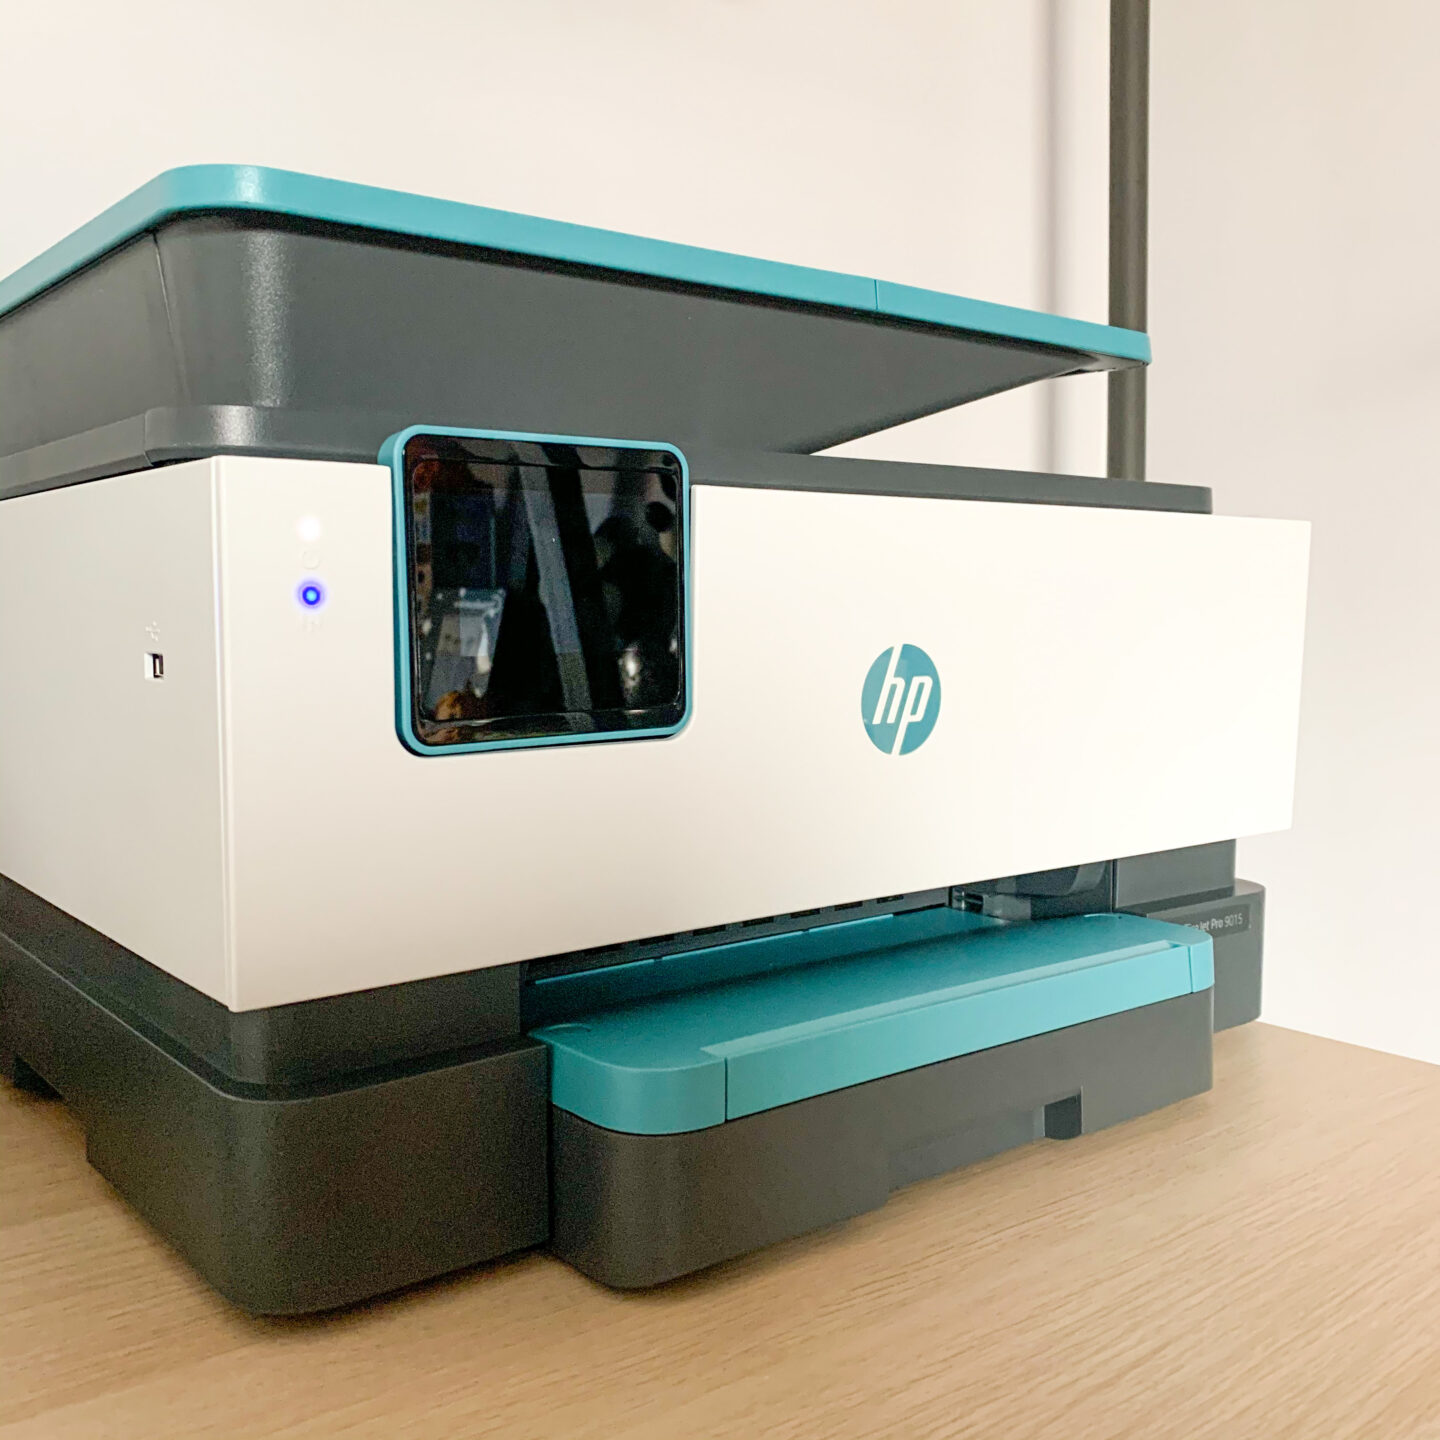 A photo of a HP Officejet Pro 9015 printer